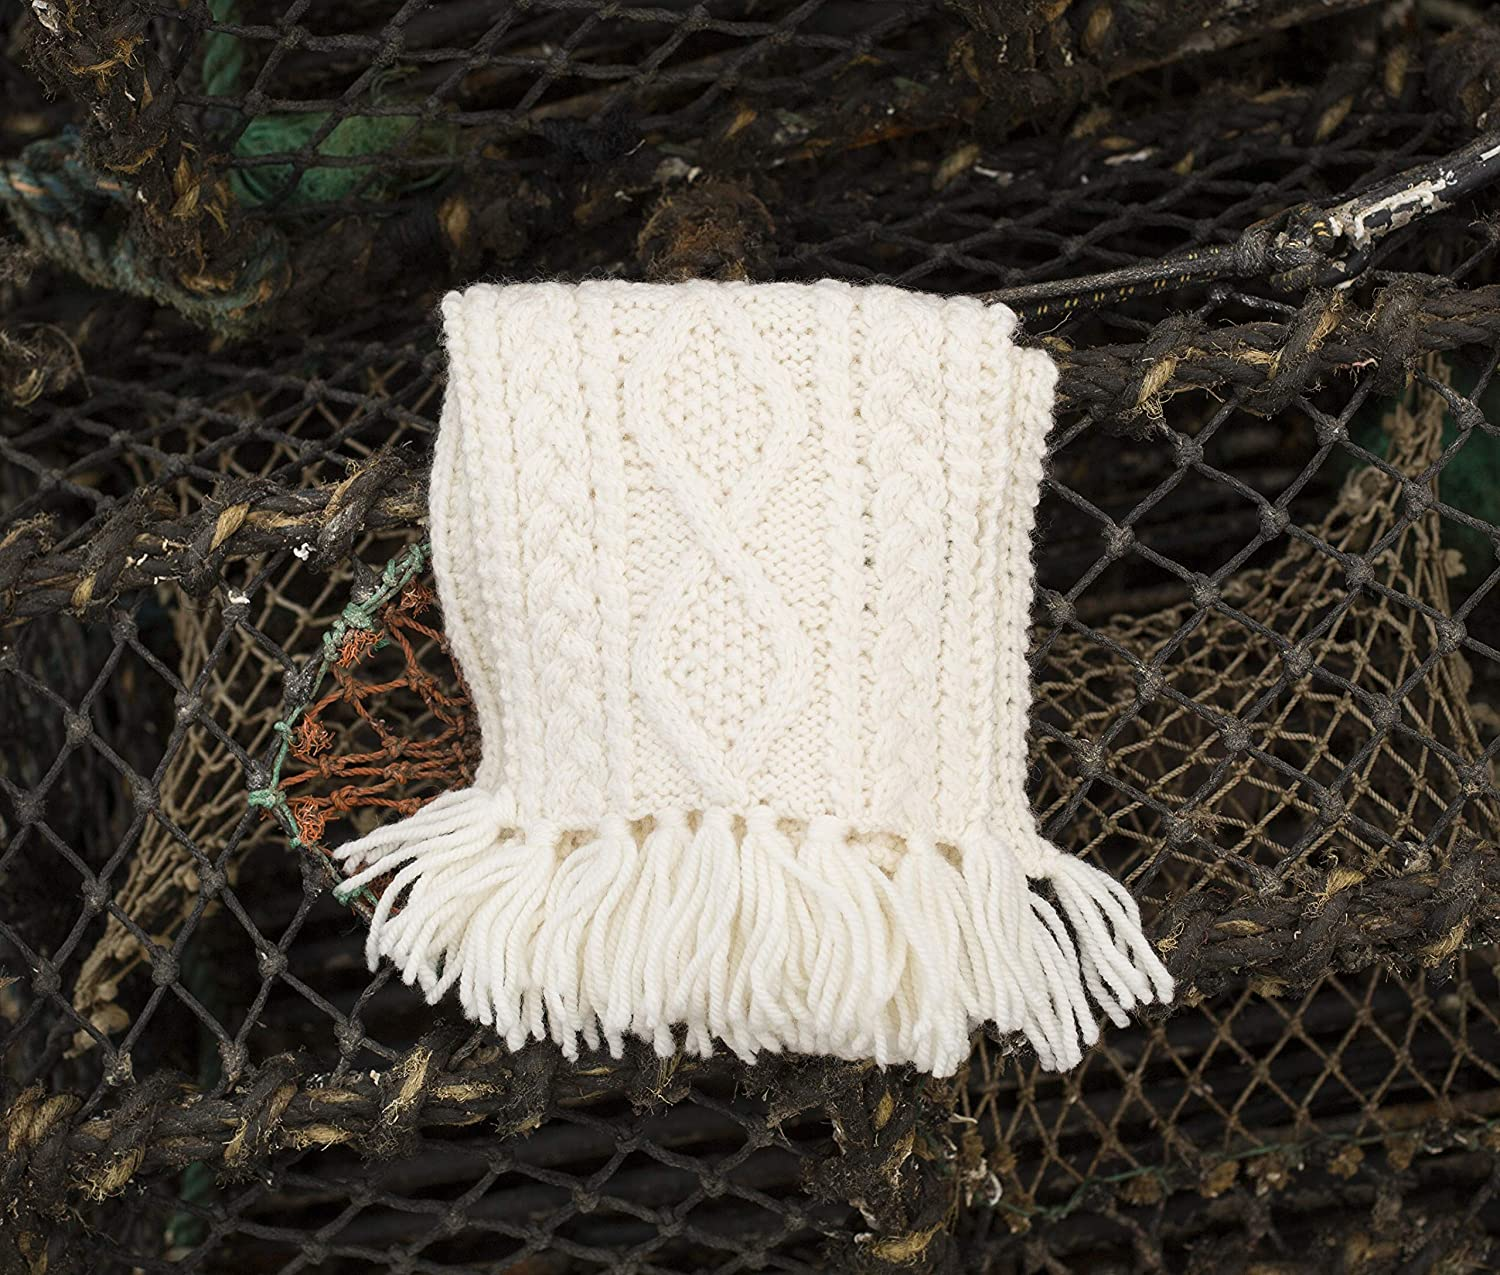 100% Irish Merino Wool Children's Handknit Natural Scarf by Carraig Donn